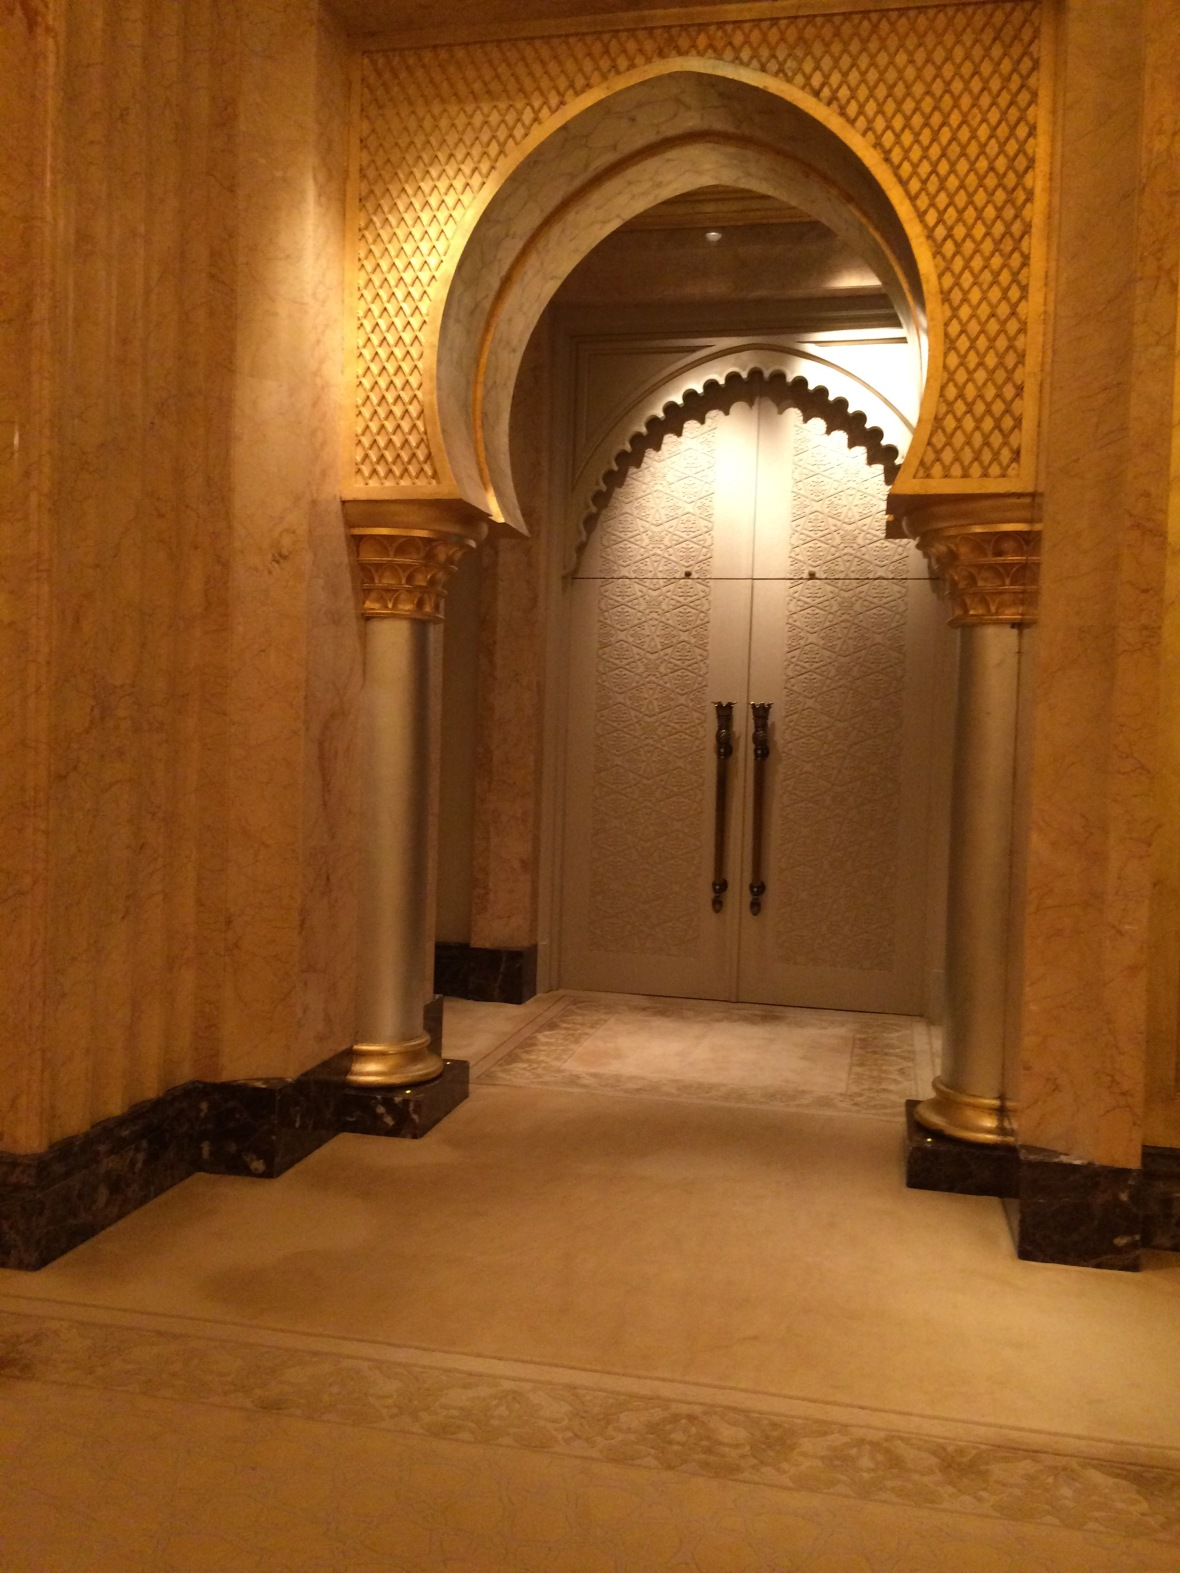 Entrance to Suite, Emirates Palace Hotel, Abu Dhabi, UAE